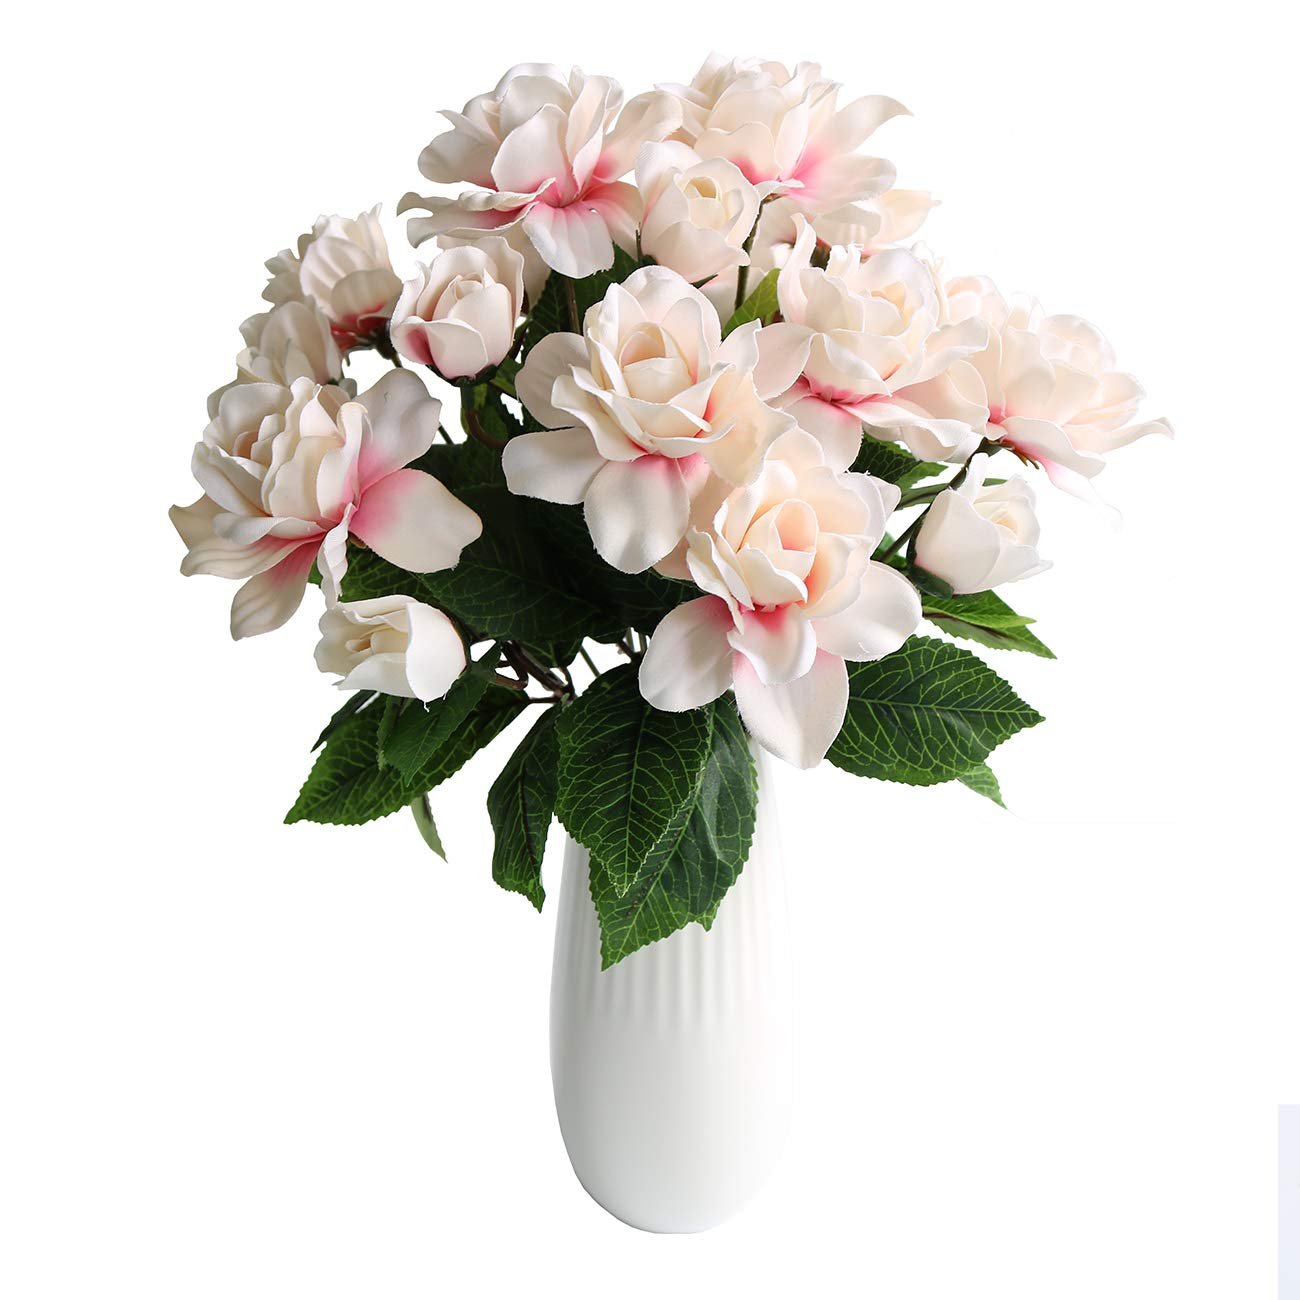 Htmeing-7-Branches-Silk-Jasmine-Artificial-Gardenia-Flower-Wedding-Decorative-for-Home-Decoration2-Bouquets-Pink